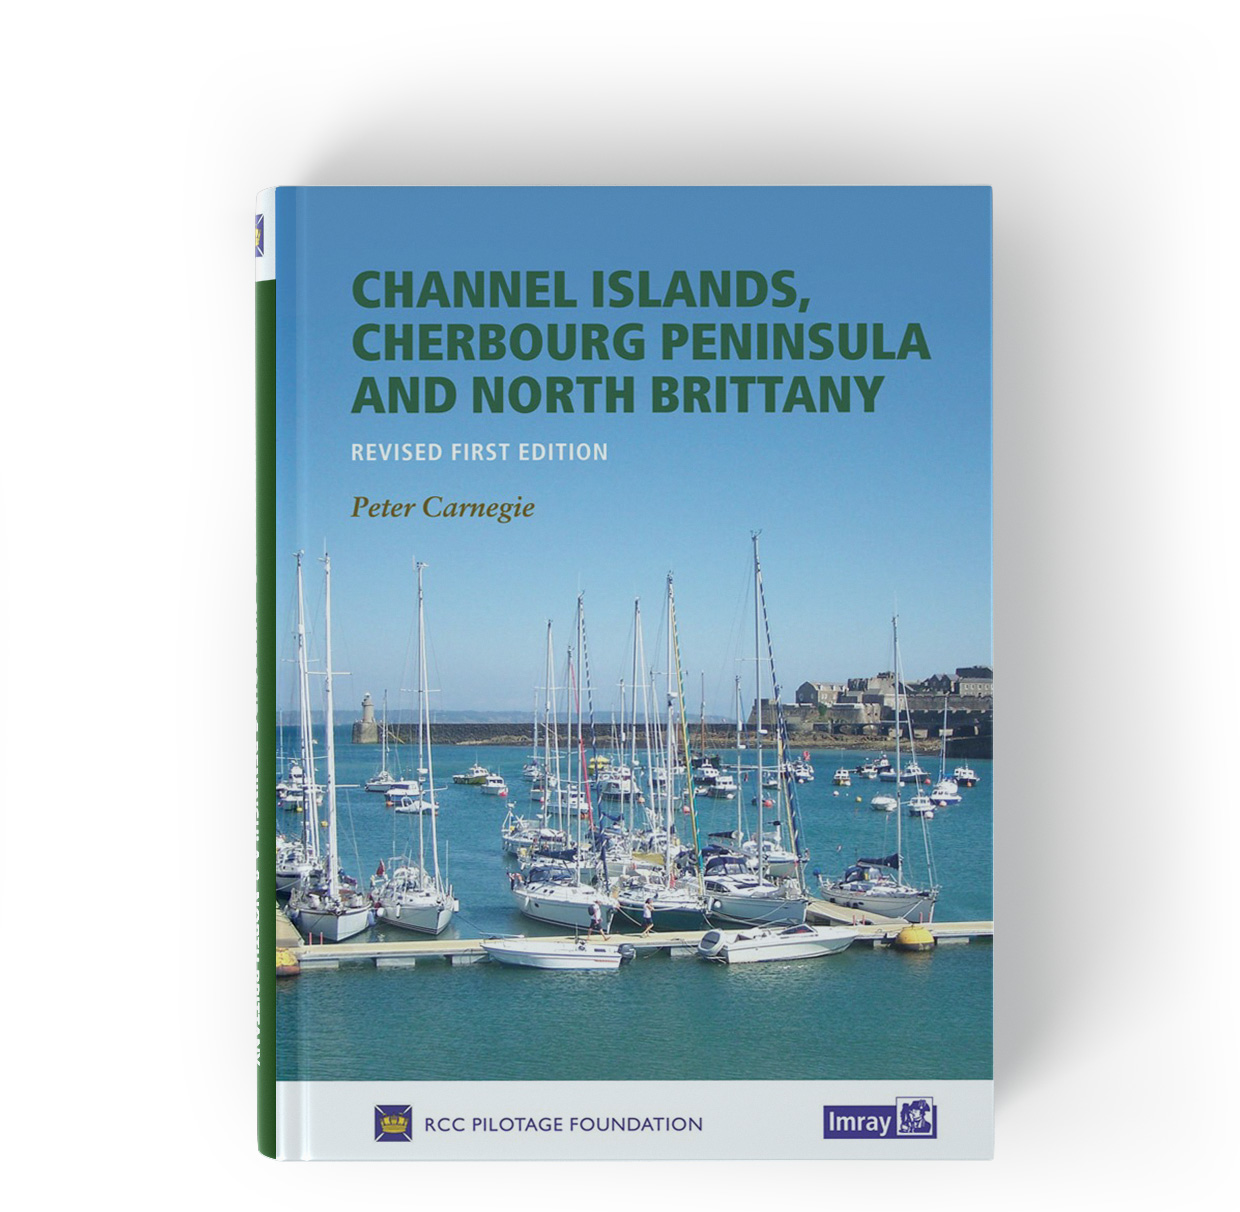 Channel Islands, Cherbourg Peninsula, North Brittany